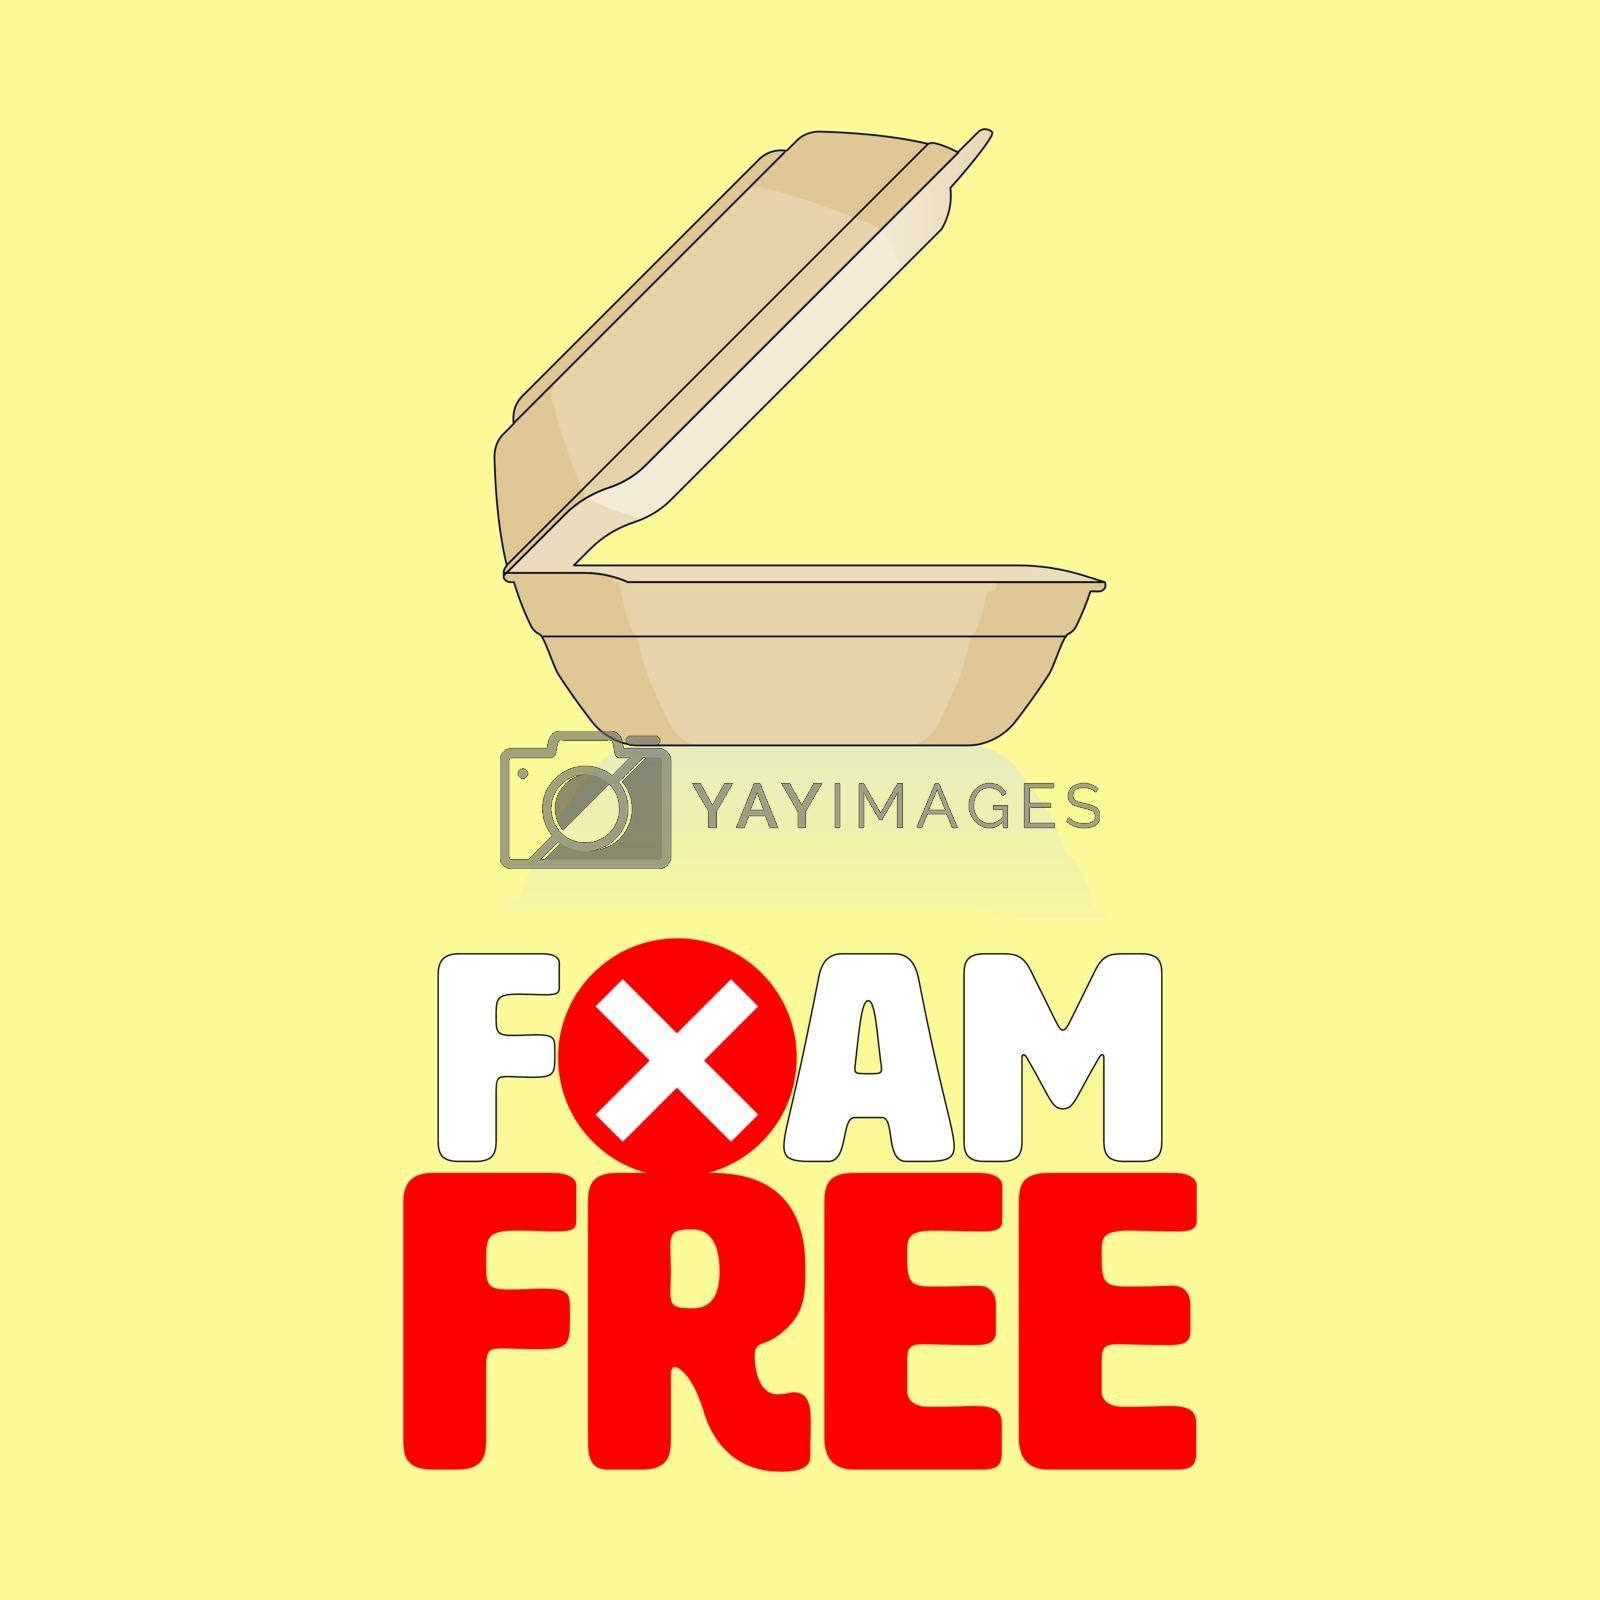 Outline flat icon of styrofoam container with ban cross symbol gimmick typographic design. Foam free concept. Vector illustration.